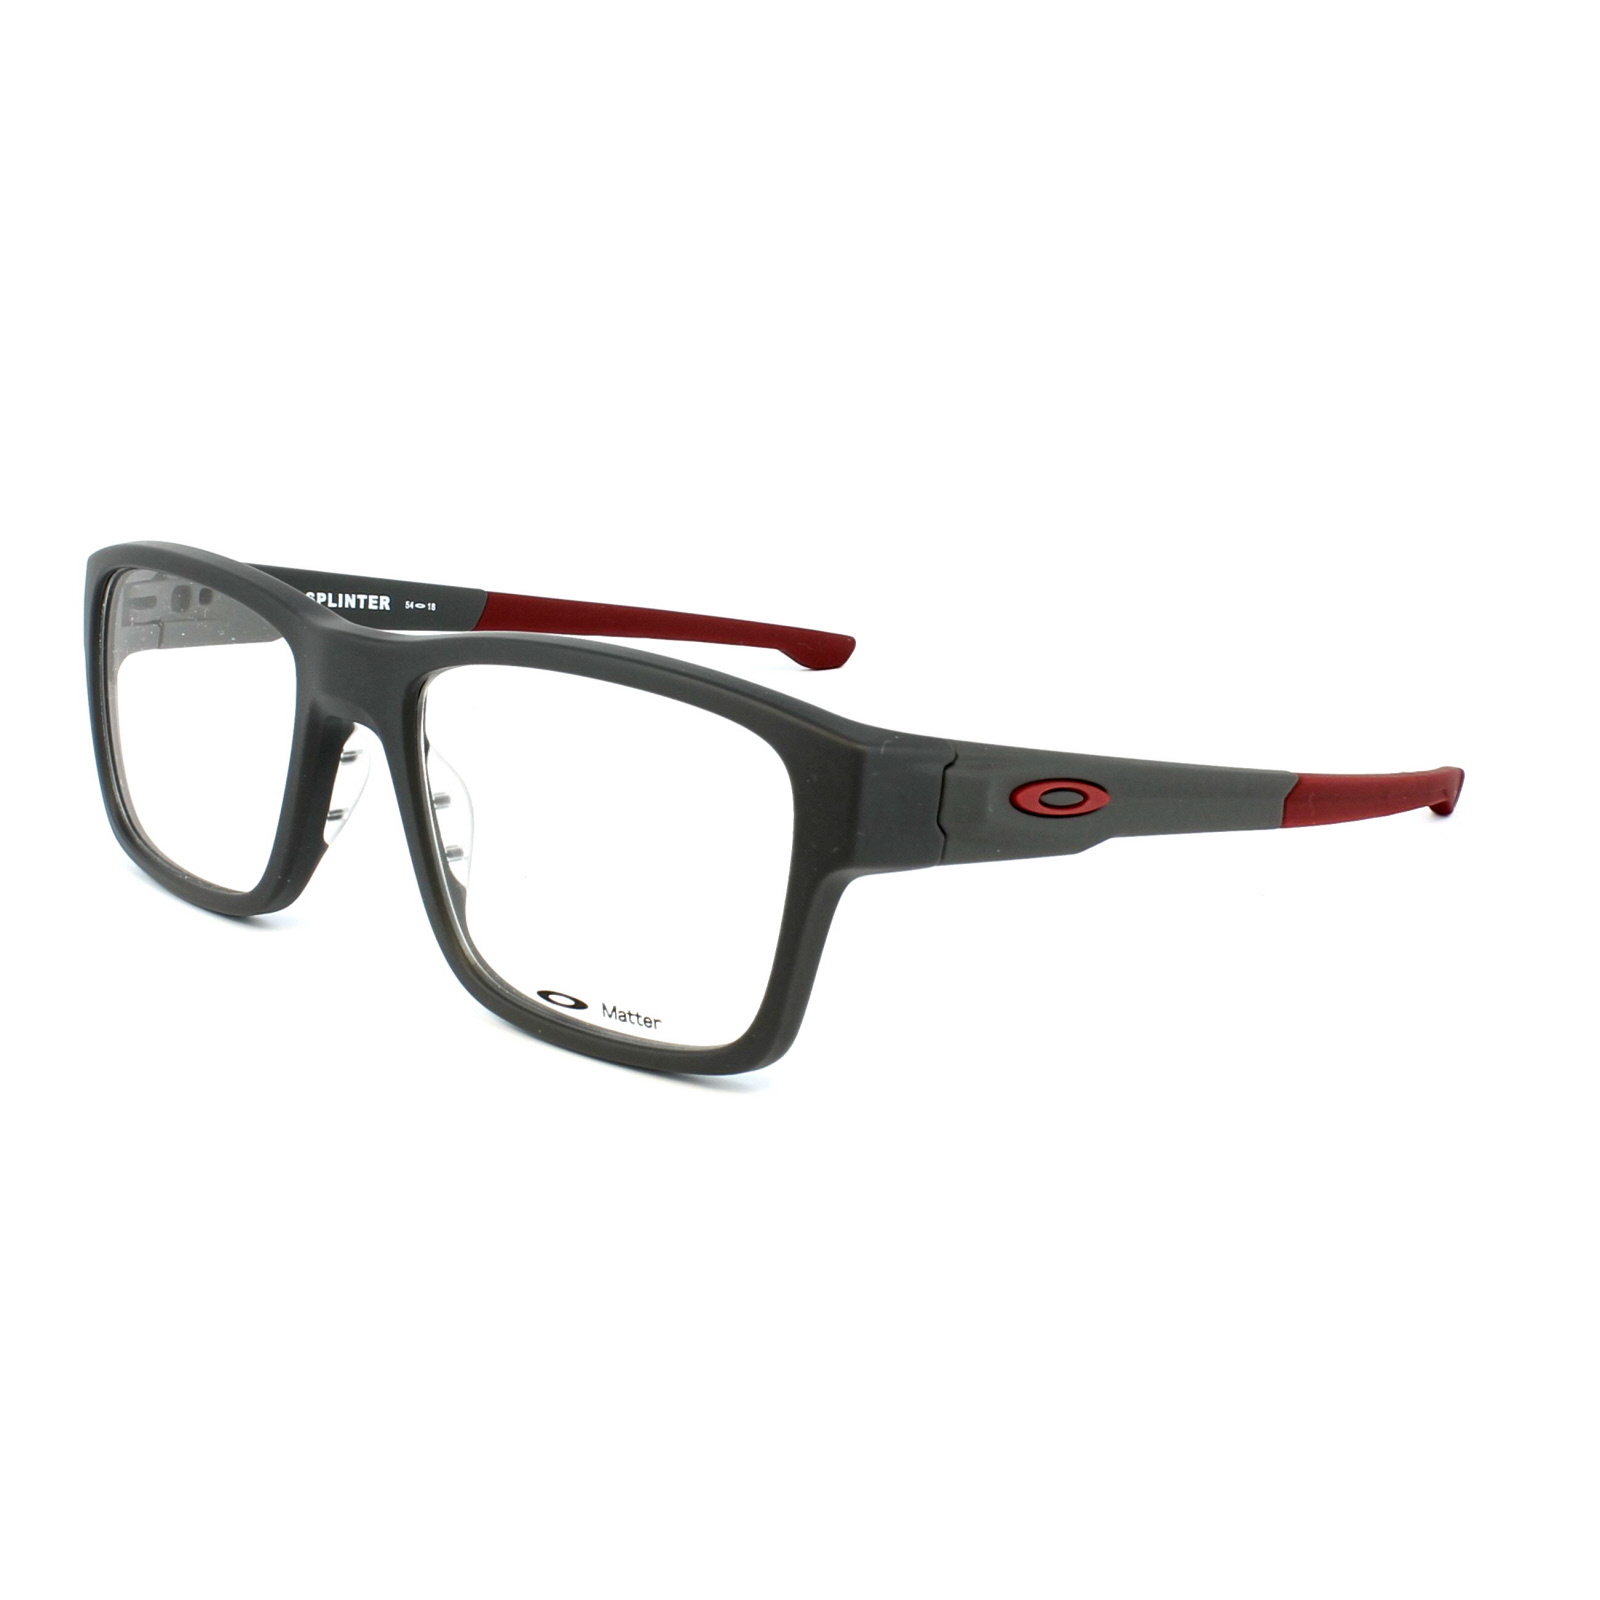 cheap frames glasses  Cheap Oakley Splinter Glasses Frames - Discounted Sunglasses